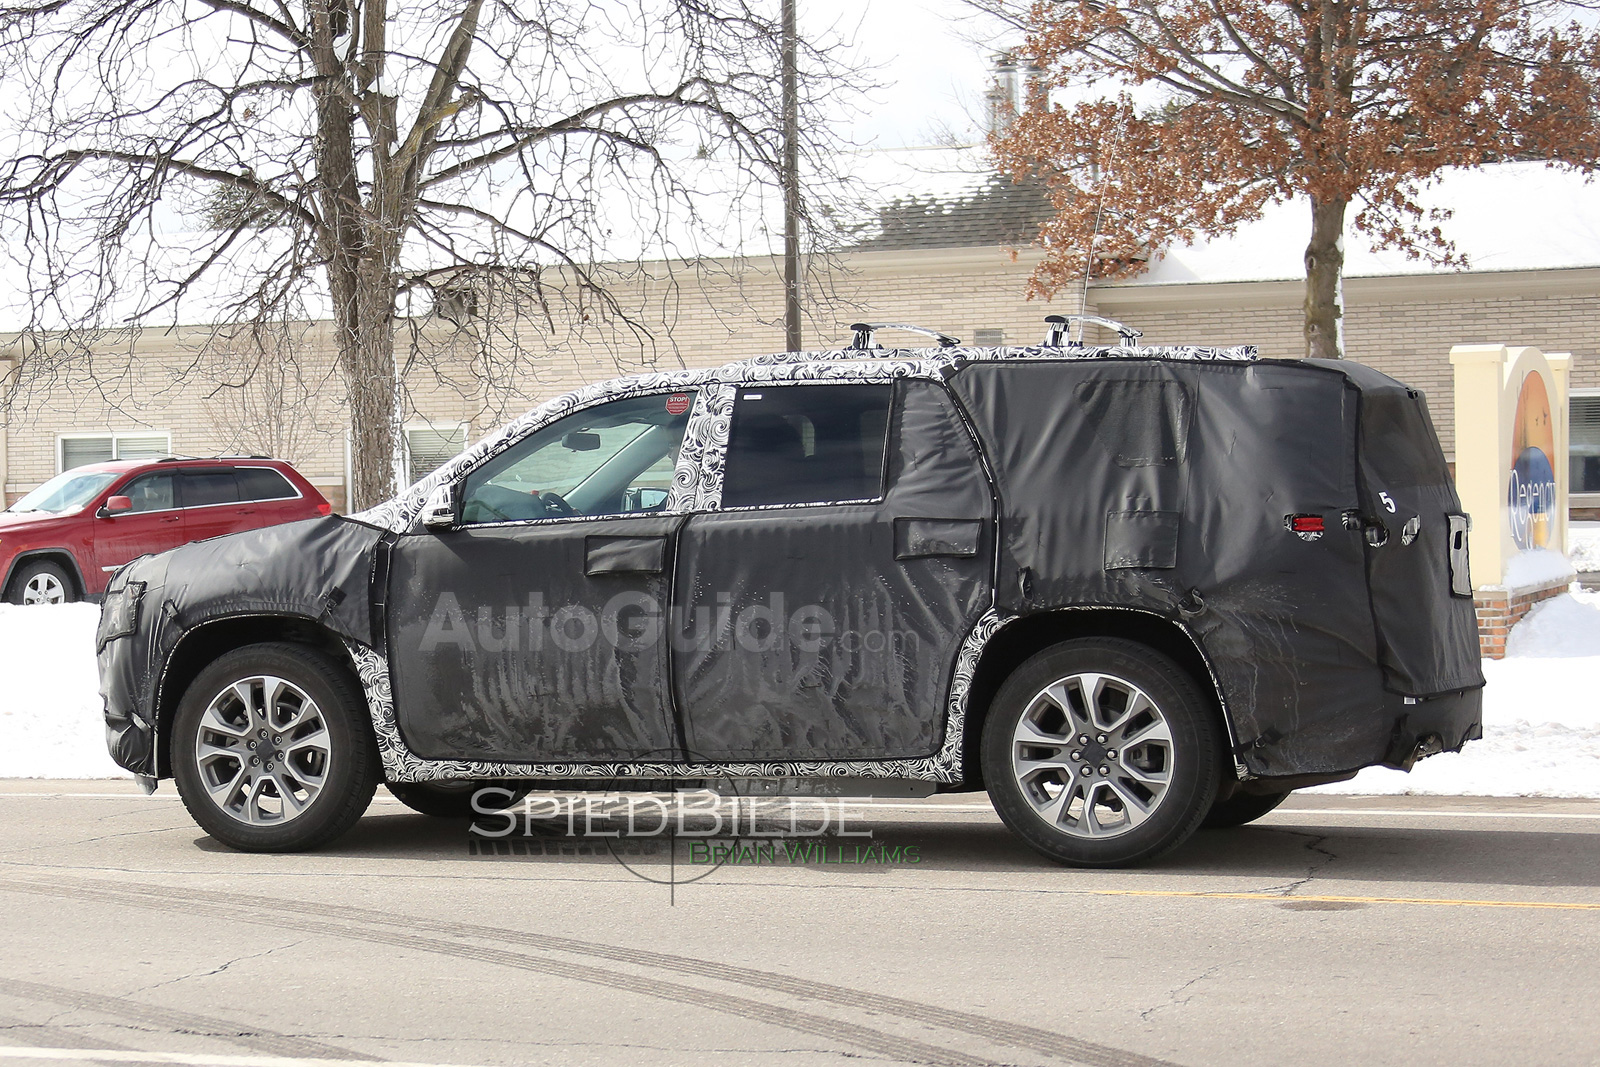 2018 Cadillac Xt7 Or 2017 Chevy Traverse Spied Testing For The